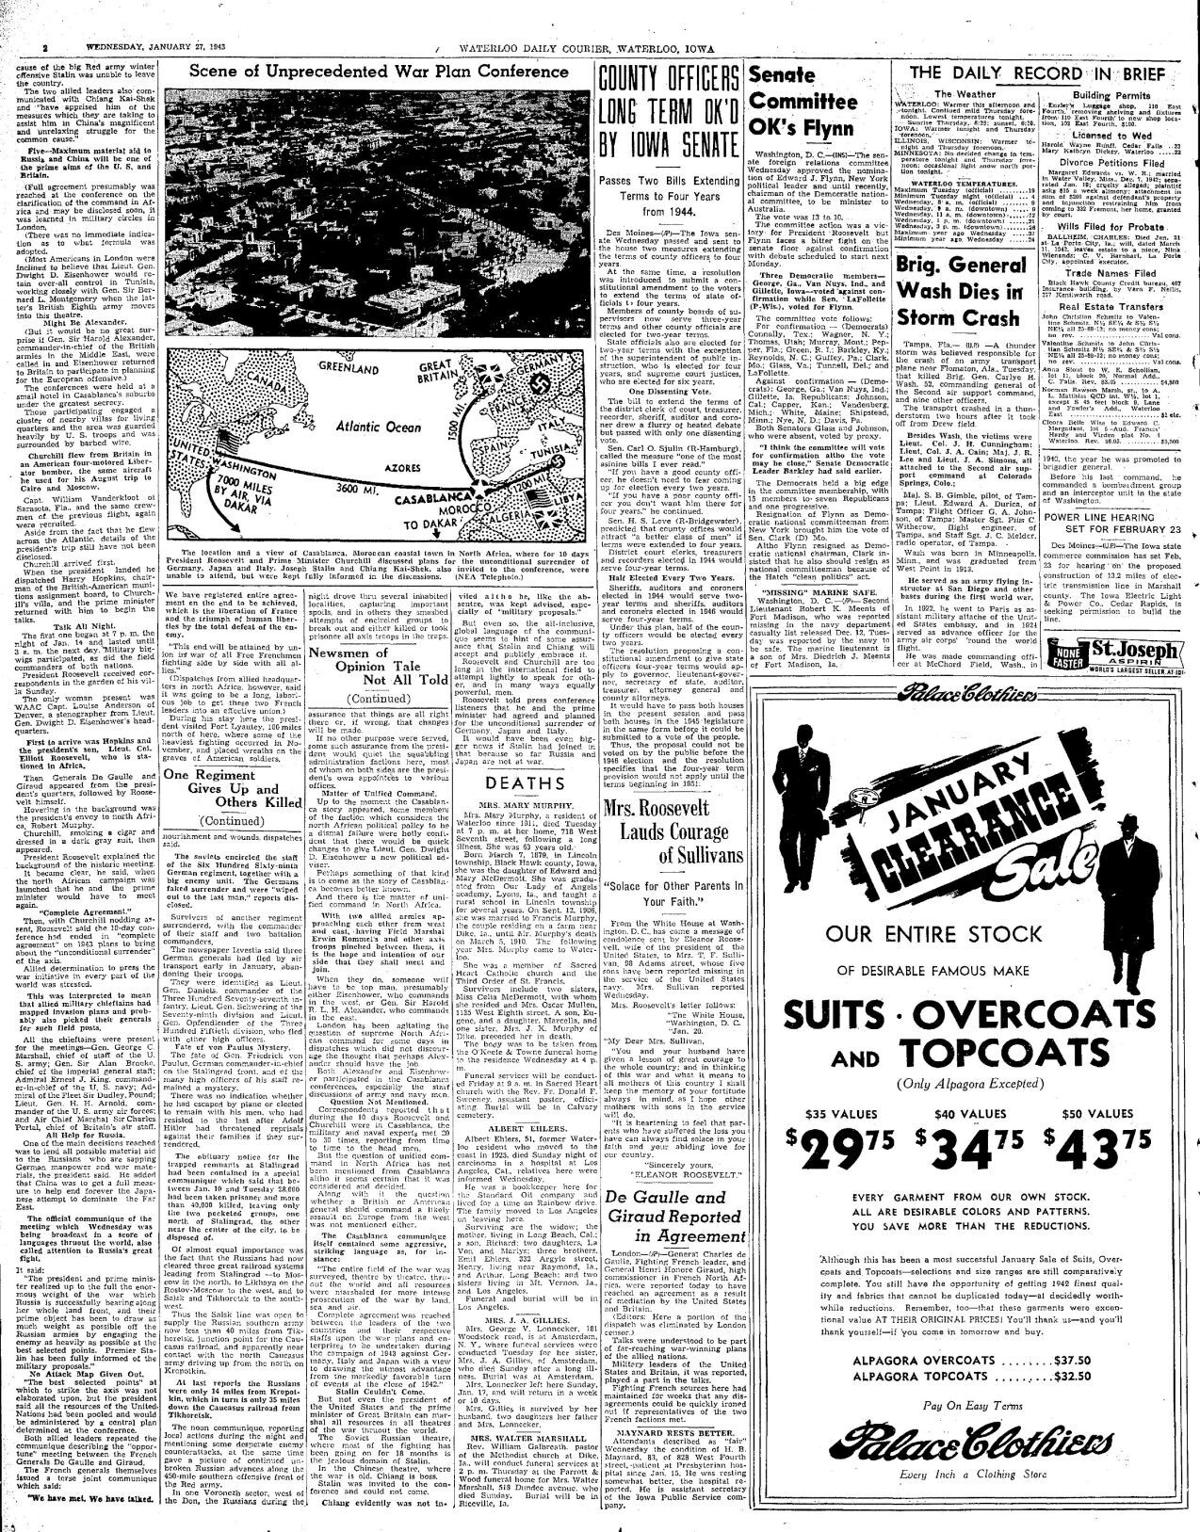 Courier Jan. 27, 1943